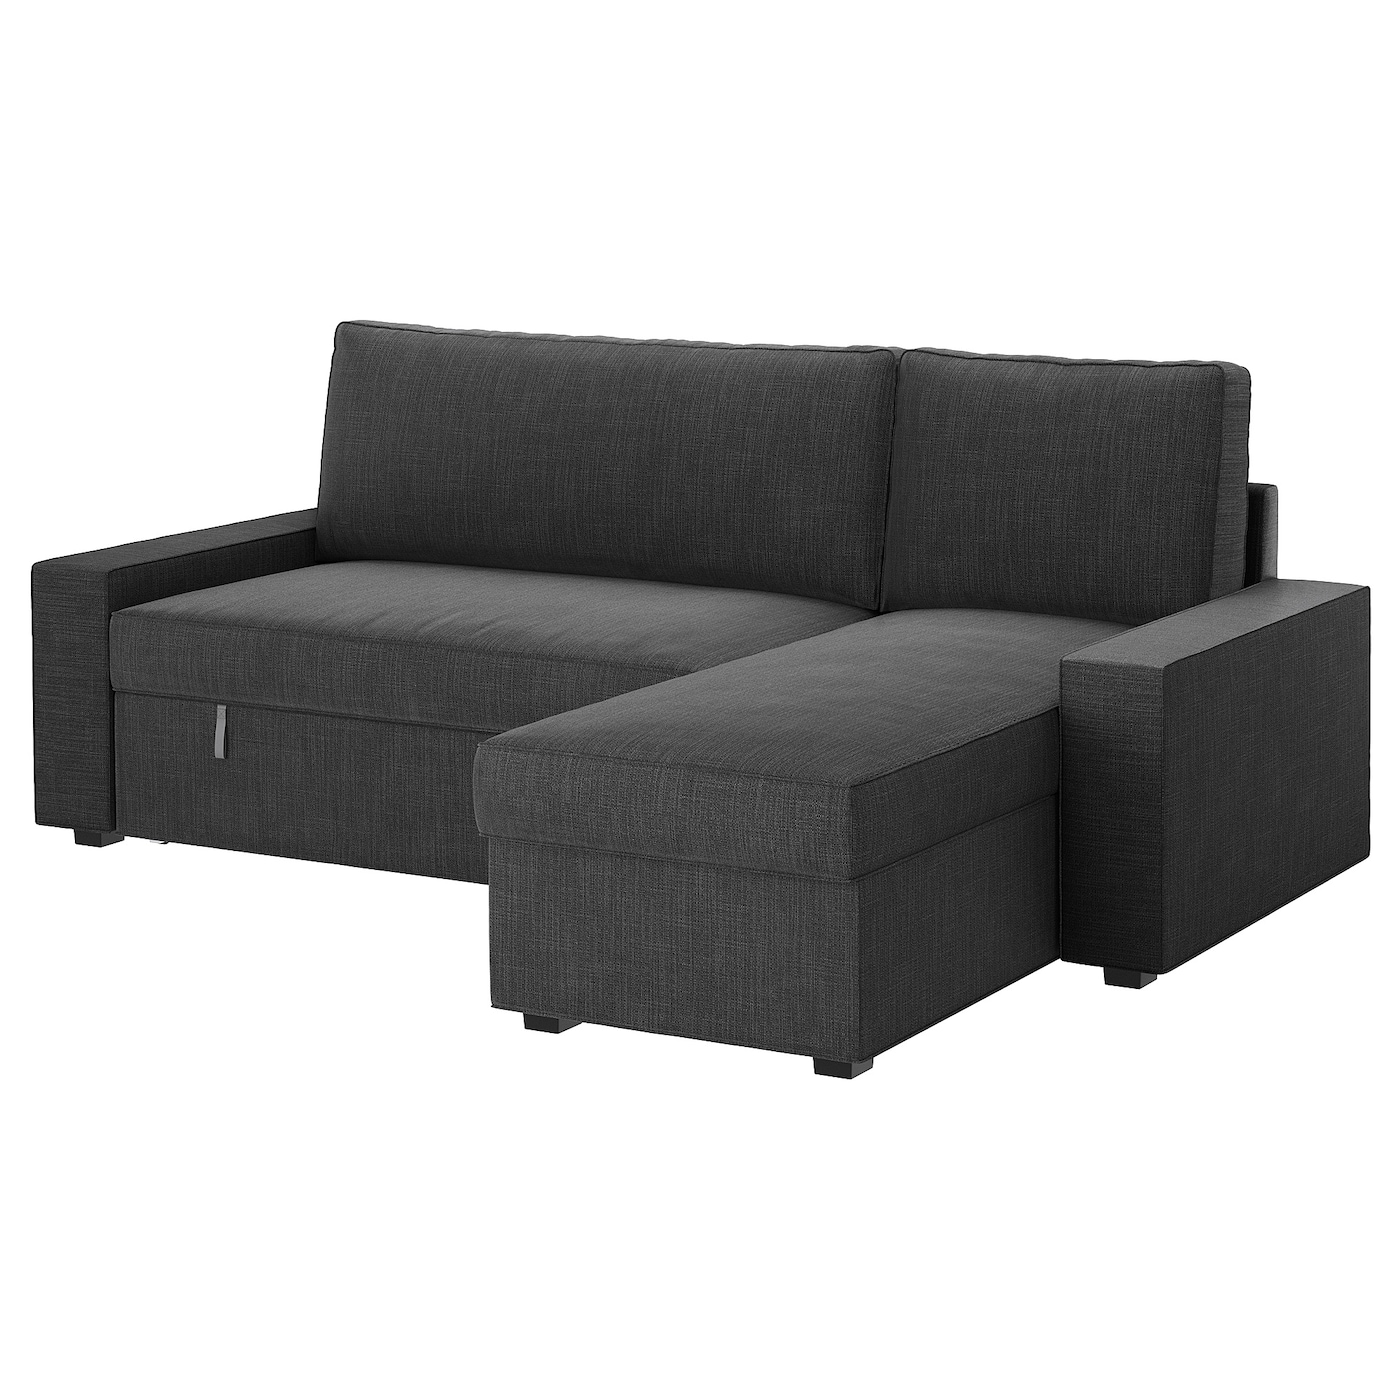 Vilasund sofa bed with chaise longue hillared anthracite - Sofa rinconera con chaise longue ...